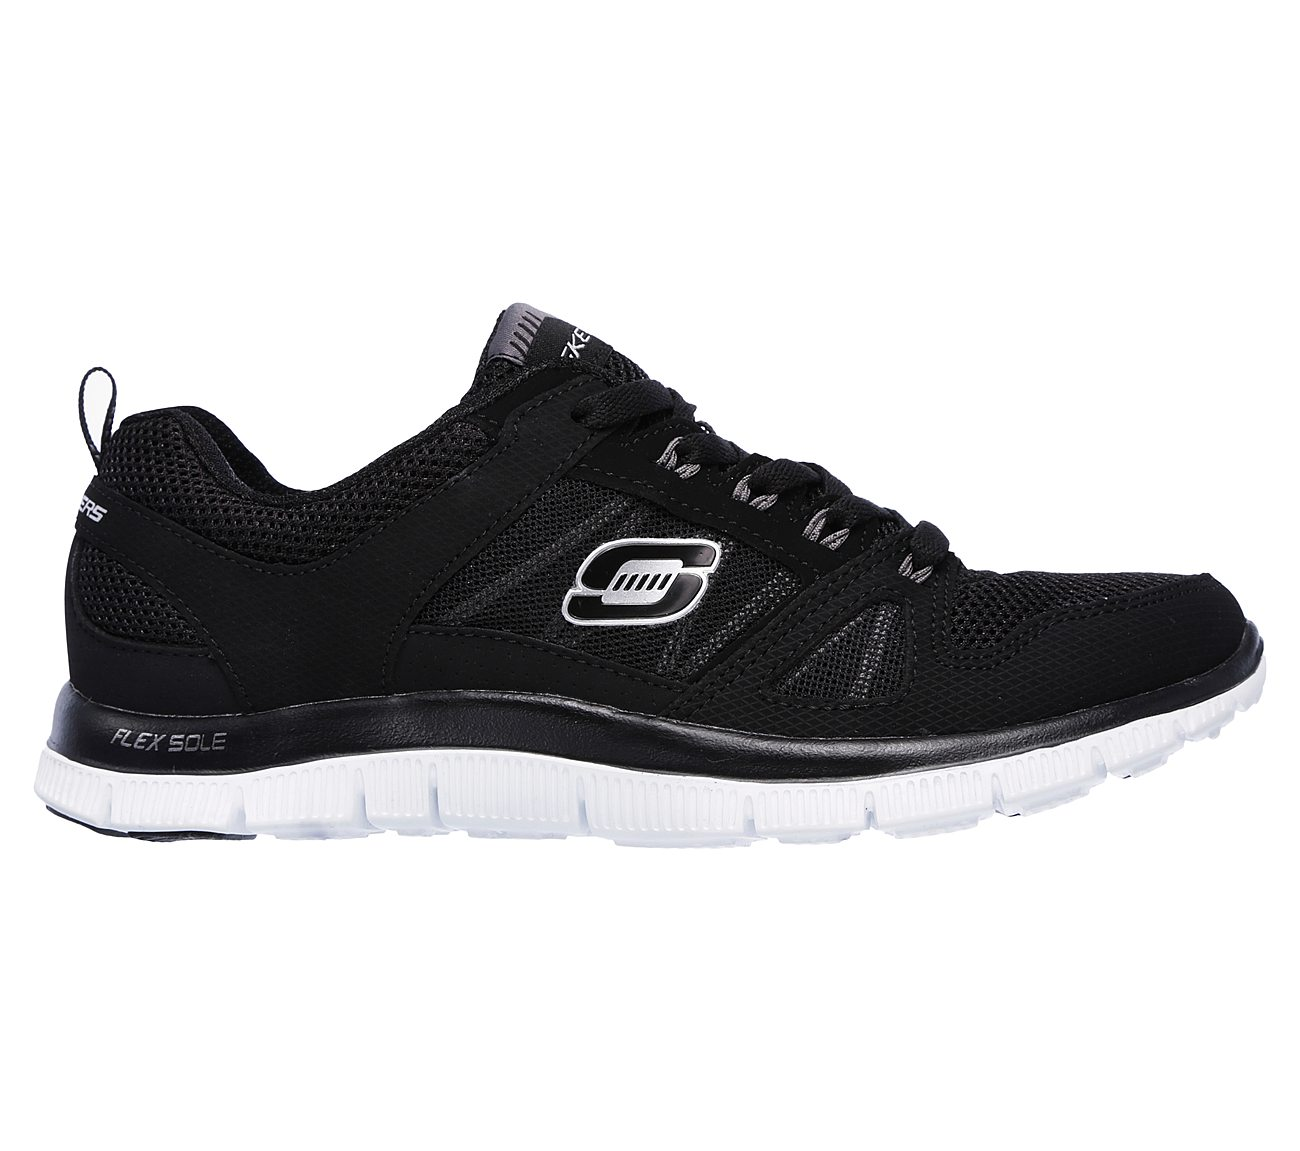 09681cbff4b0 Buy SKECHERS Flex Appeal - Spring Fever Flex Appeal Shoes only £57.00